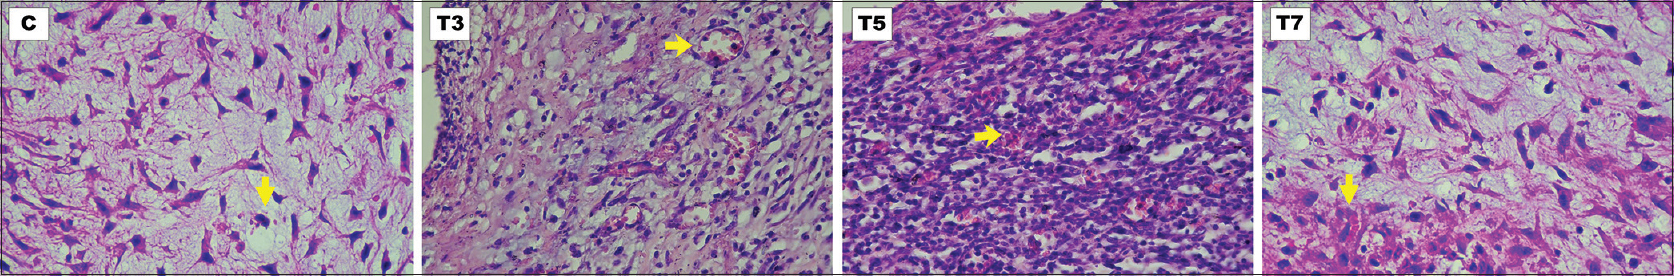 Figure 1: The hematoxylin-eosin staining of neovascularization (×400) for C, T3, T5, and T7 groups. Yellow arrows denote the stained neovascular